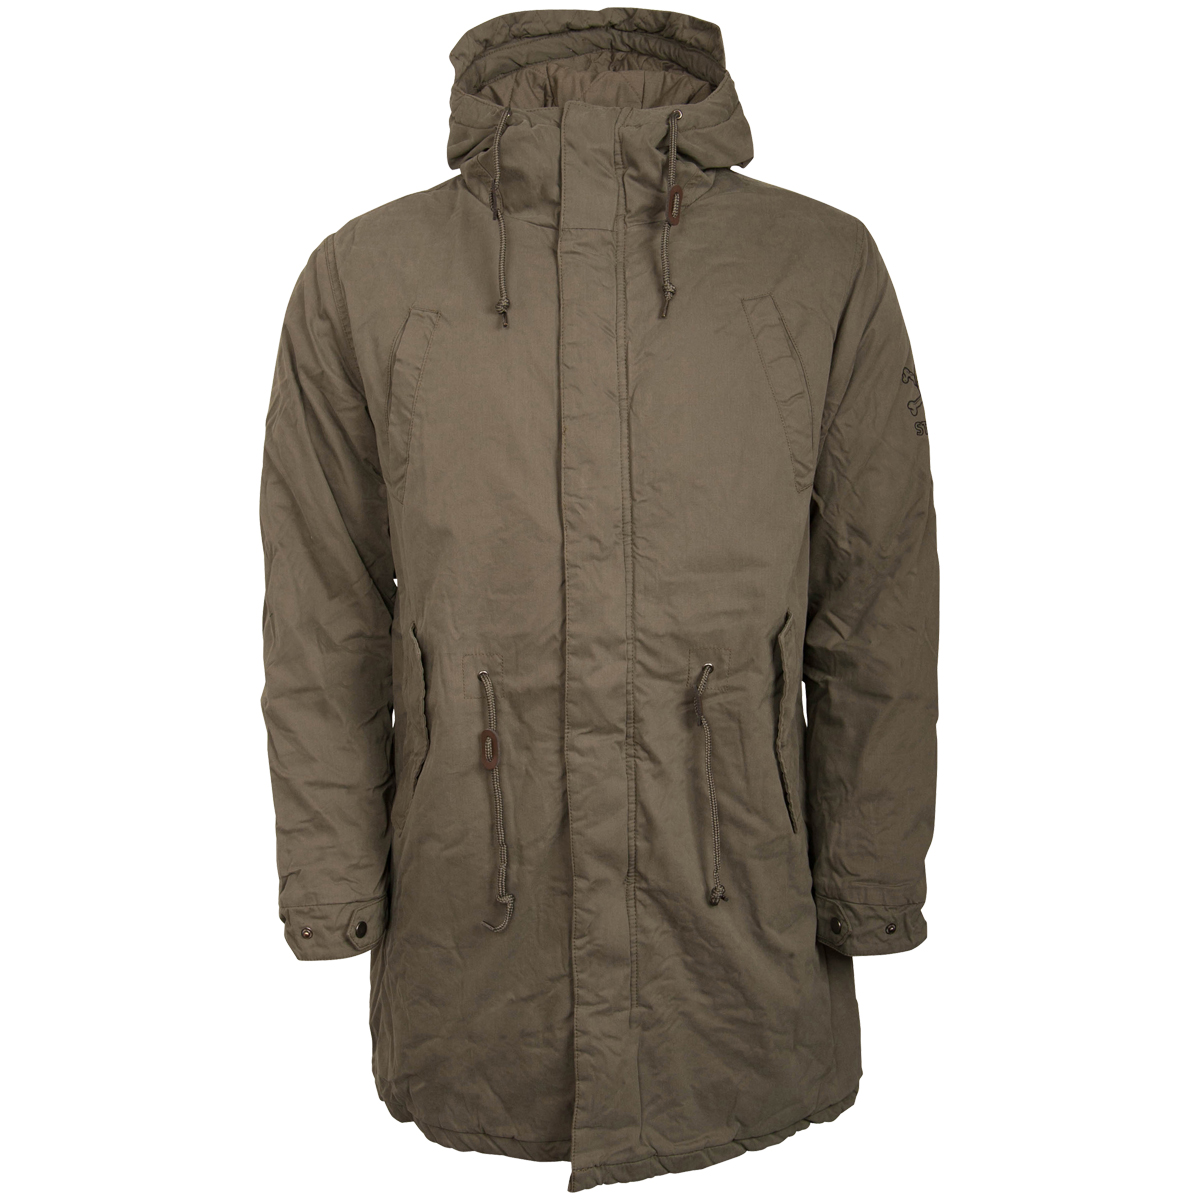 finest selection 84dd7 c6b1e FC St. Pauli - Winter Parka - olive